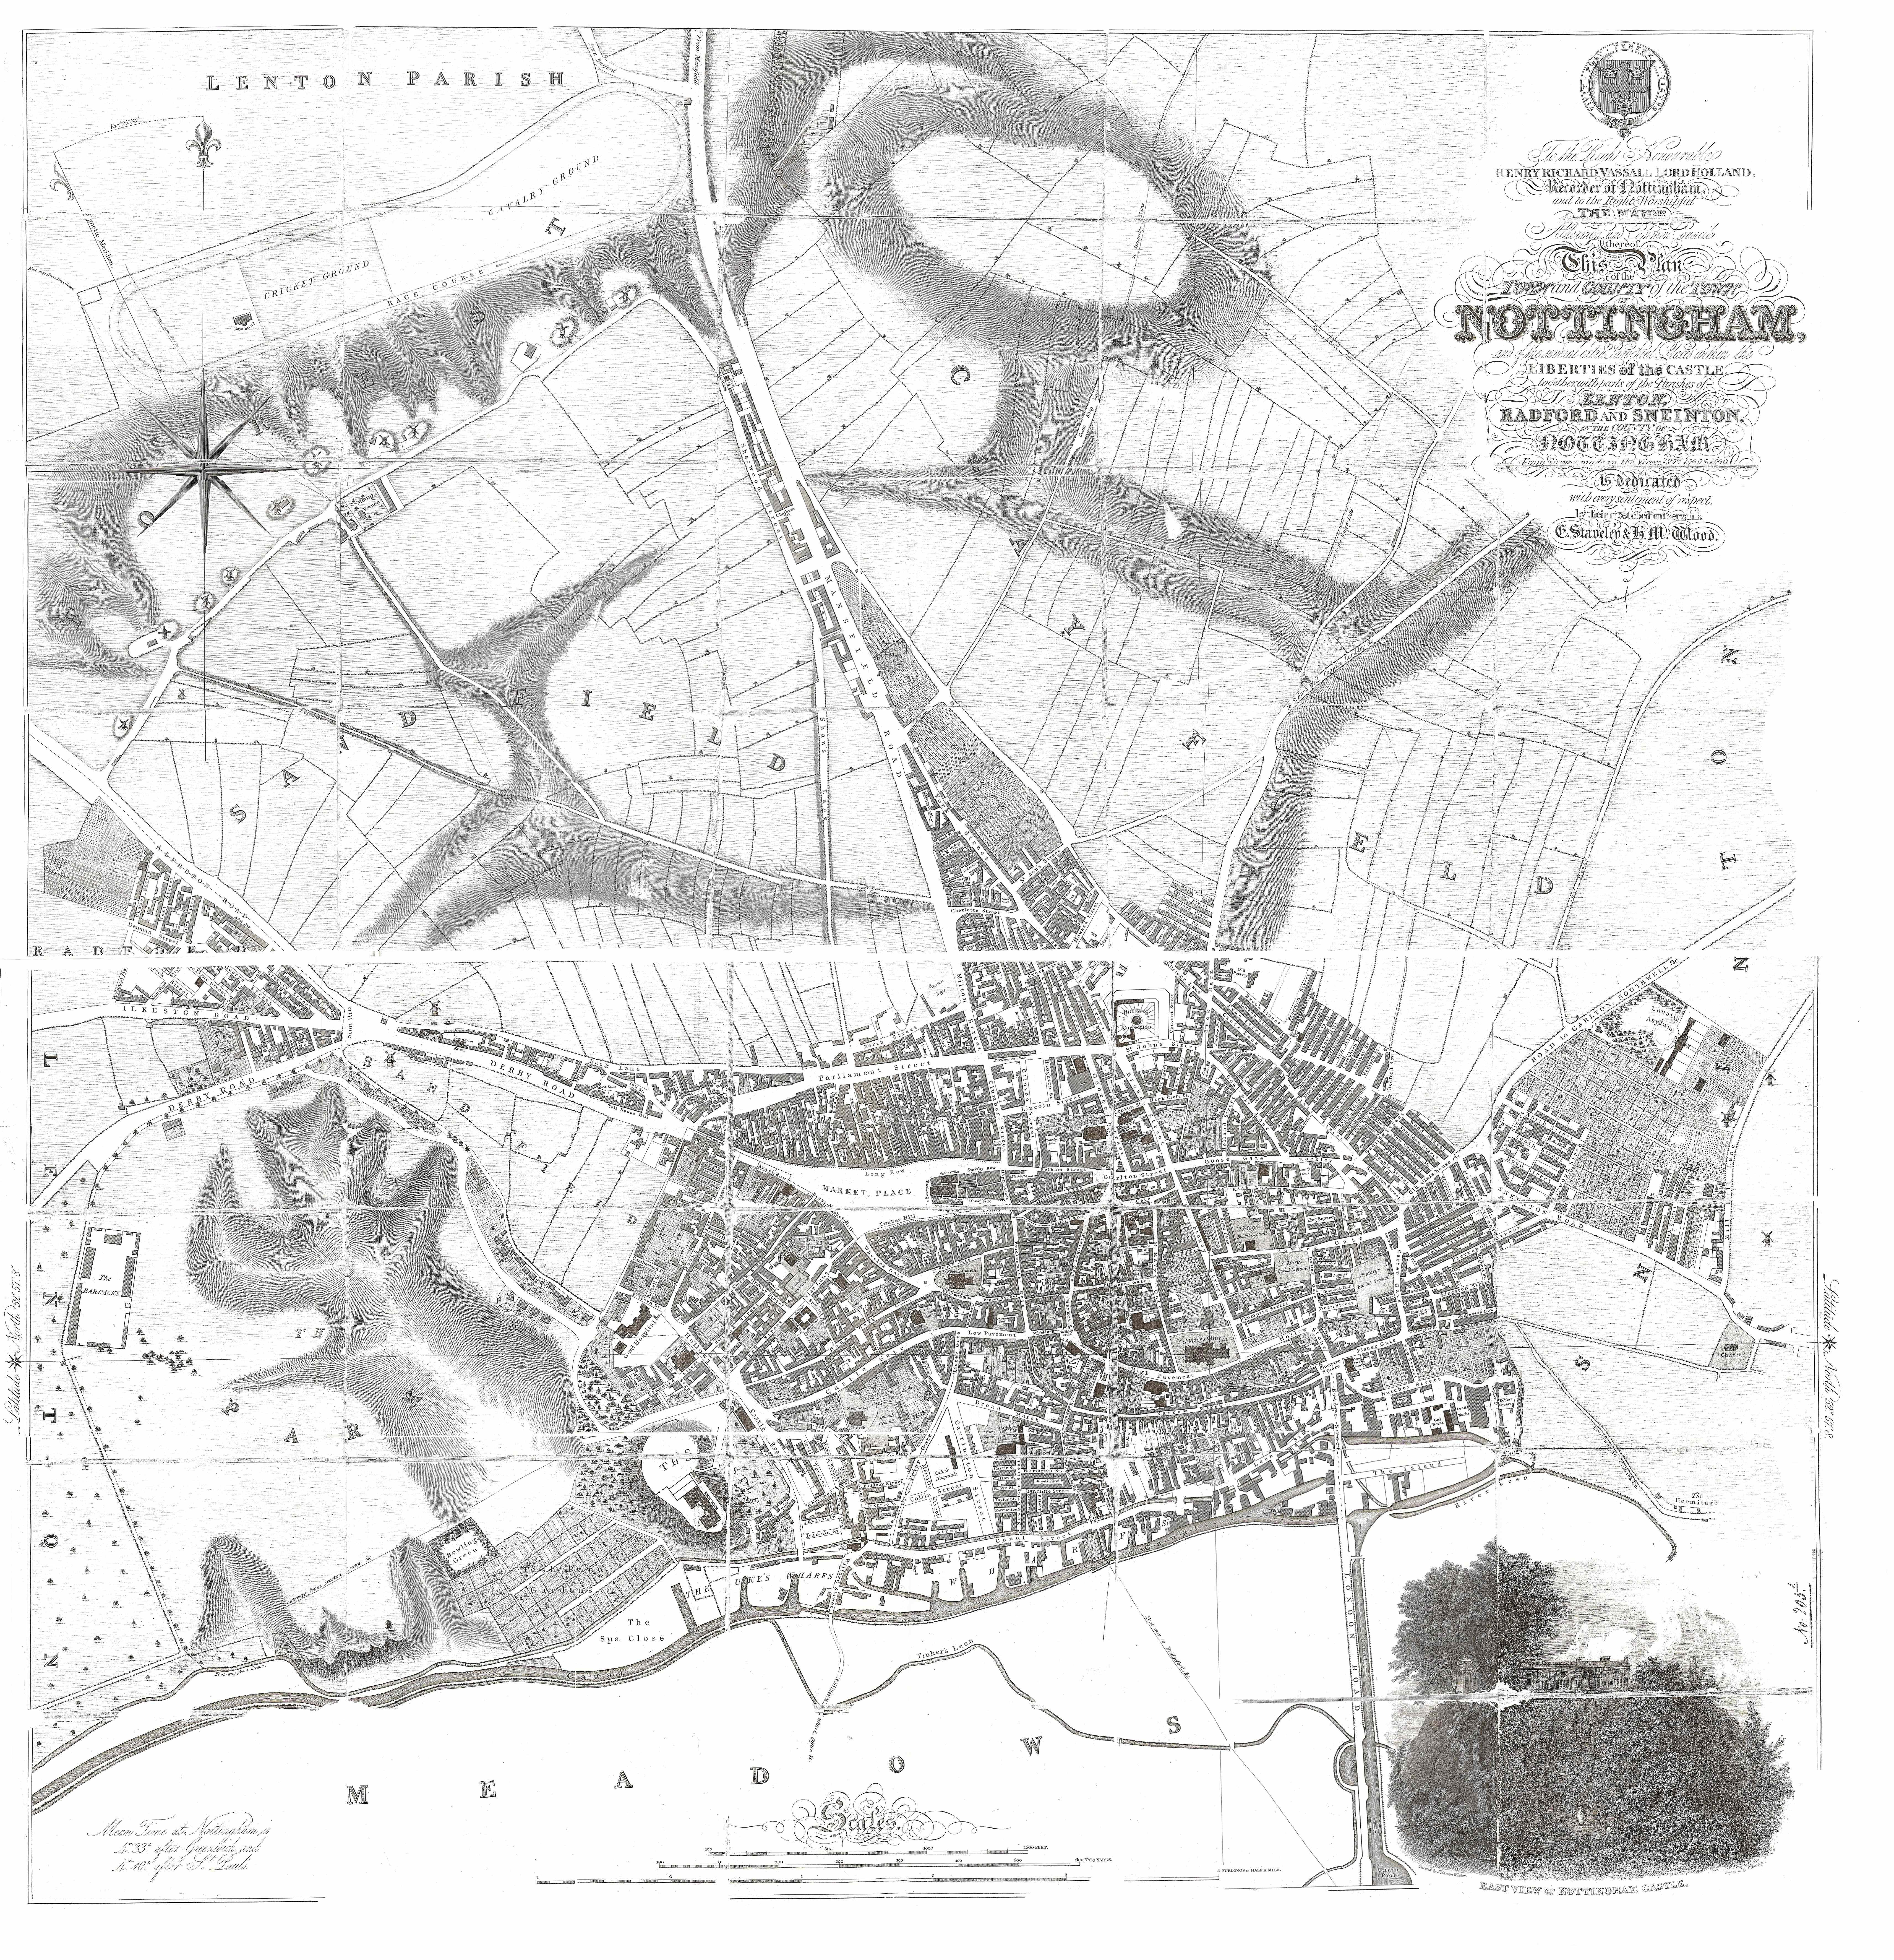 Brilliant documents No4 Staveley and Wood Map of Nottingham 1829